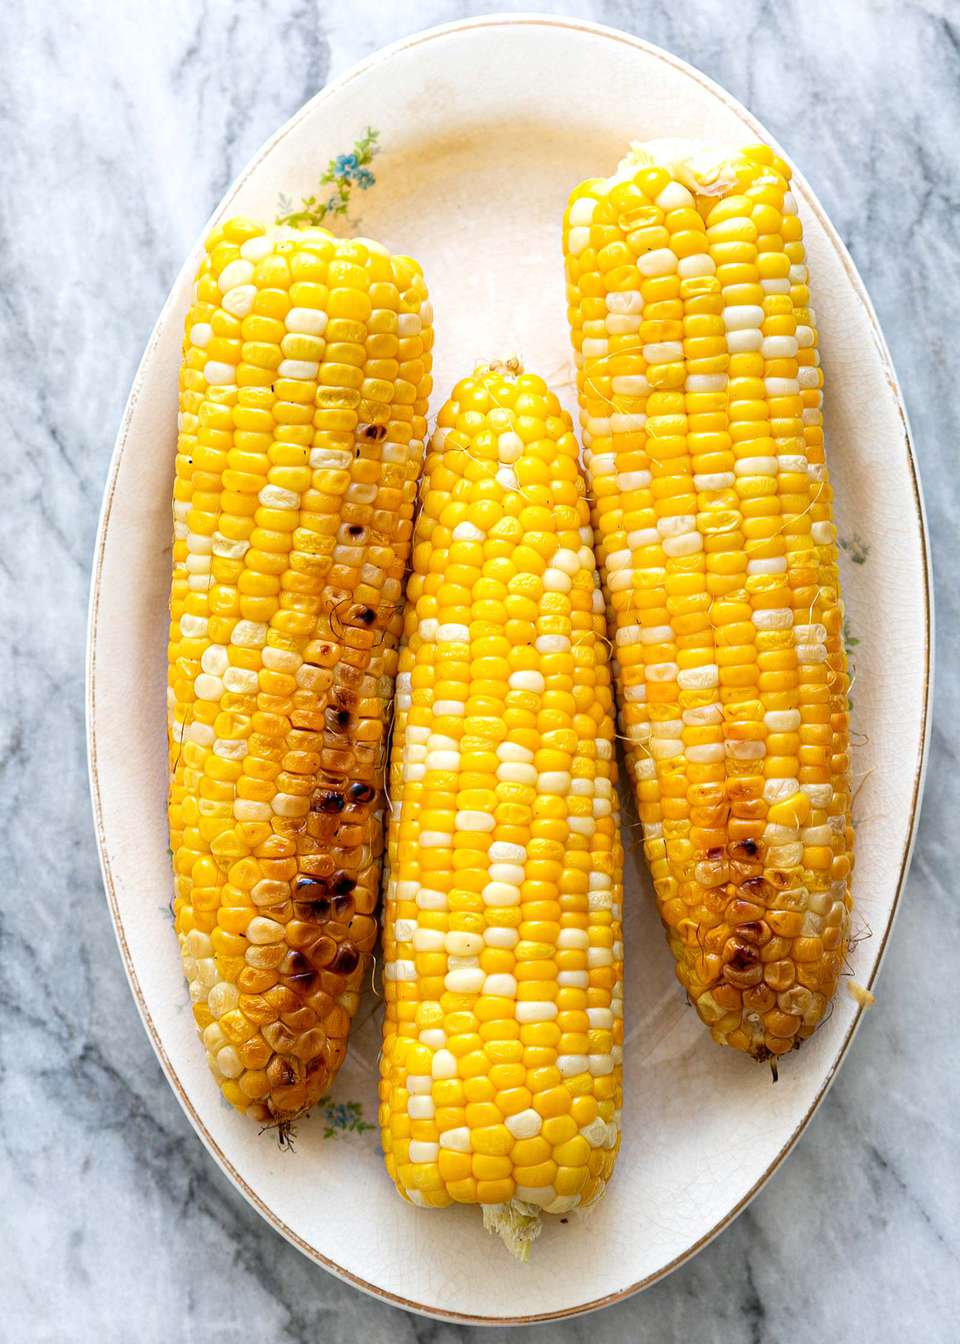 Corn on the cob, grilled, served on an oval platter